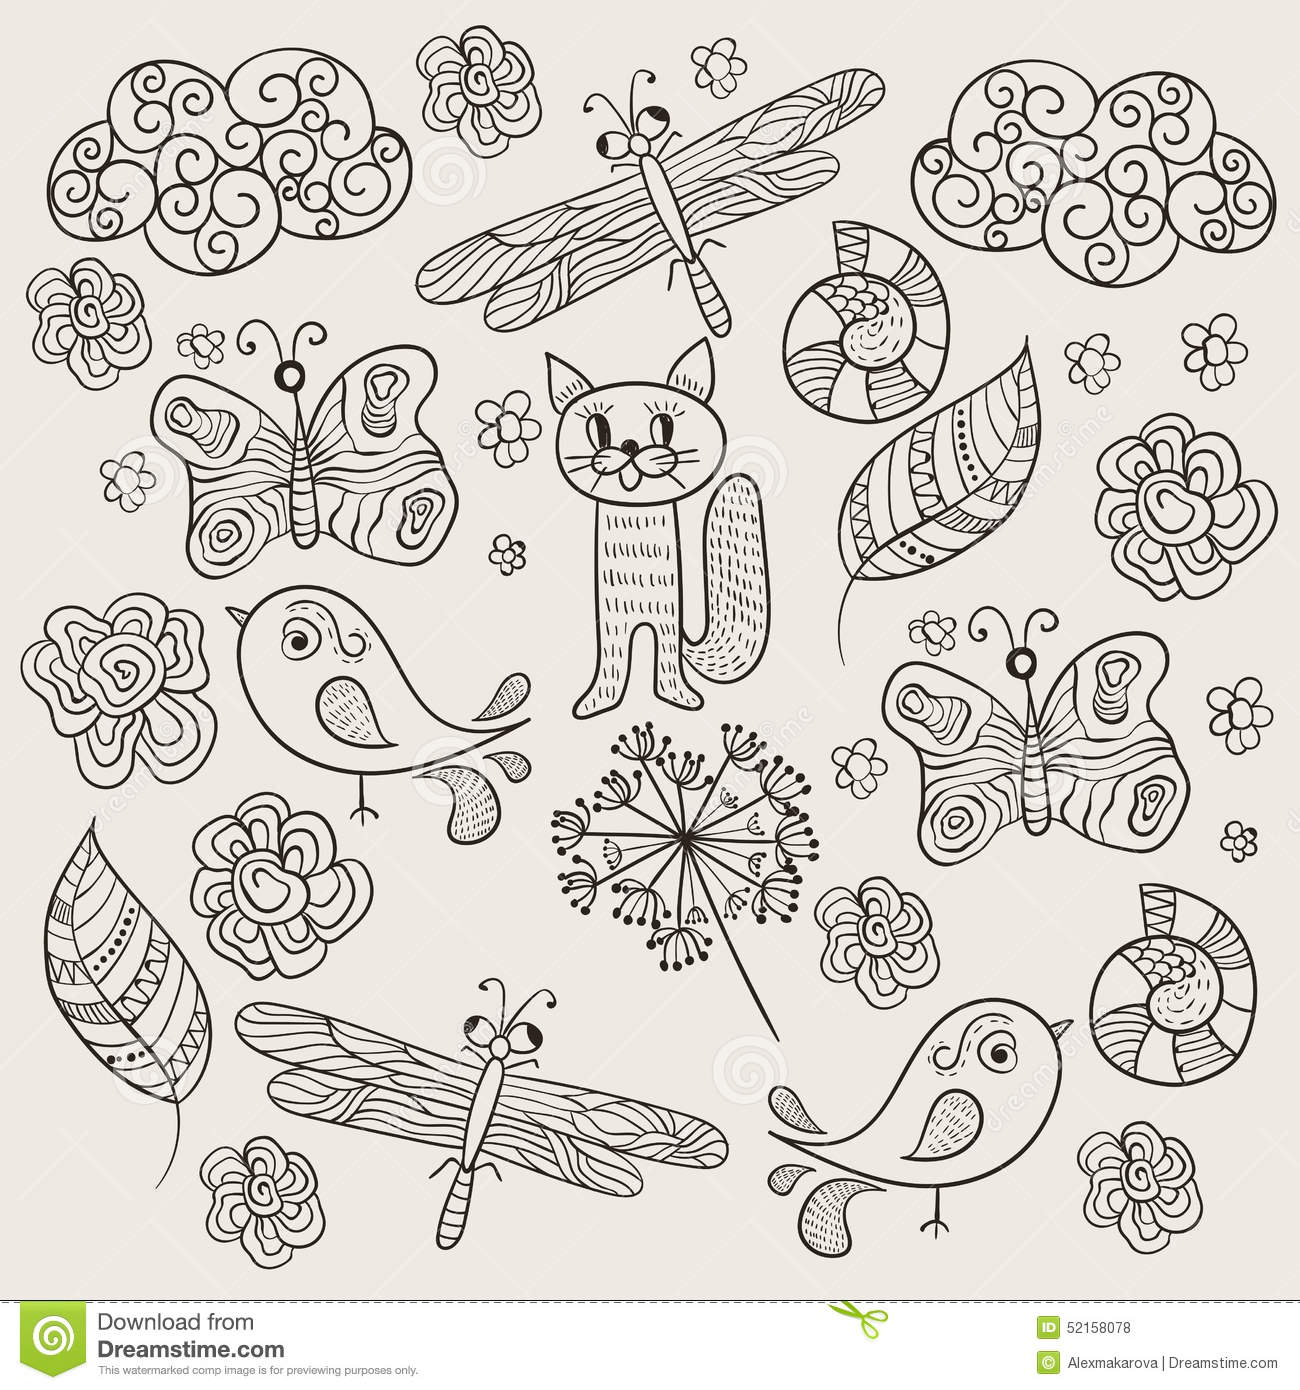 Simple Vector Line Art : Vector pattern with simple drawings stock image